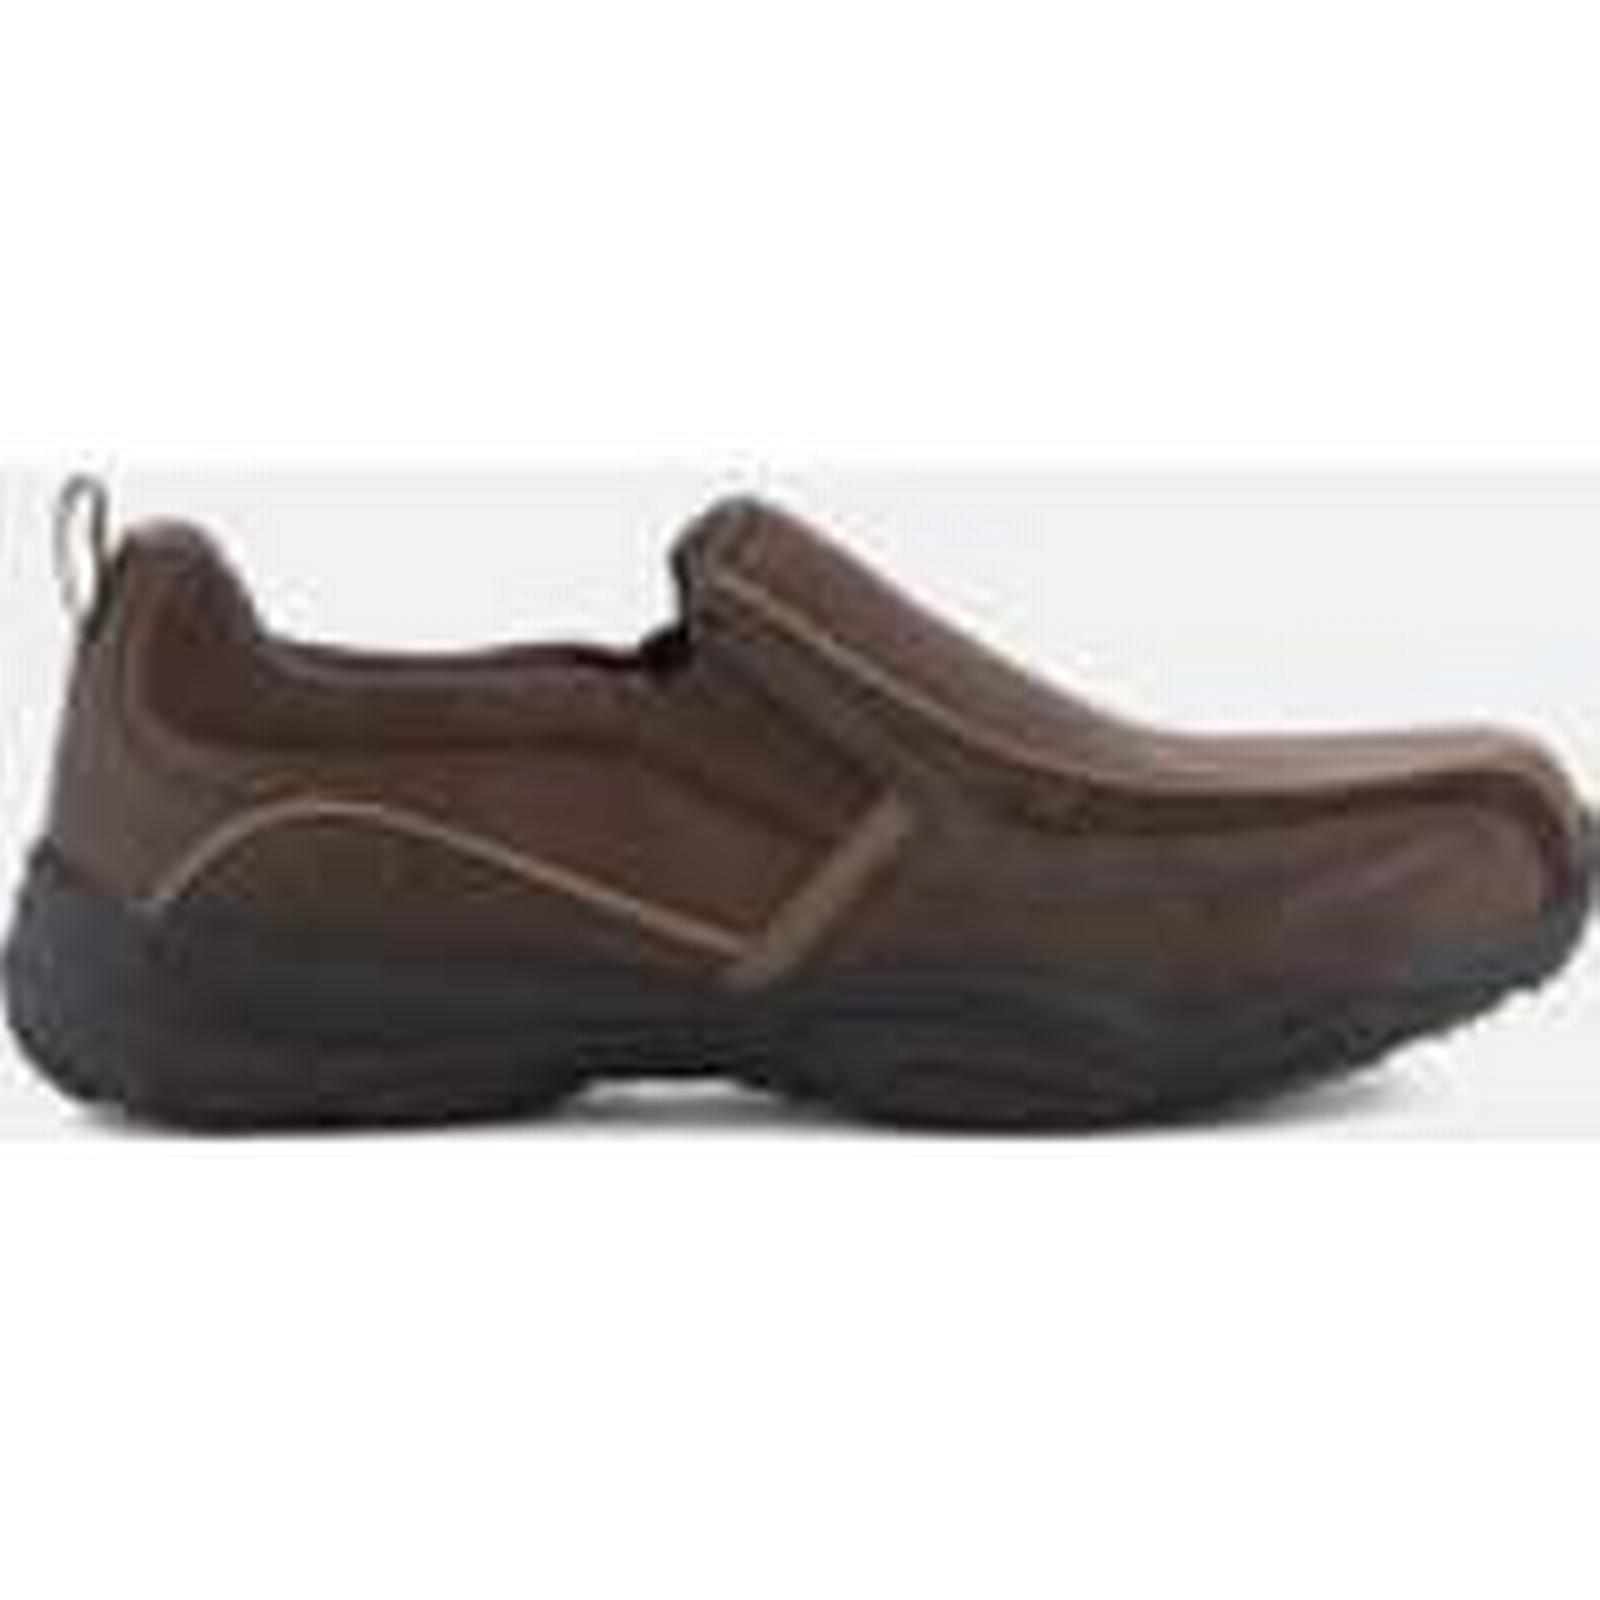 Skechers Men's Shoes Larson Berto Slip On Shoes Men's - Dark Brown - UK 8/EU 42 - Brown 4f0083